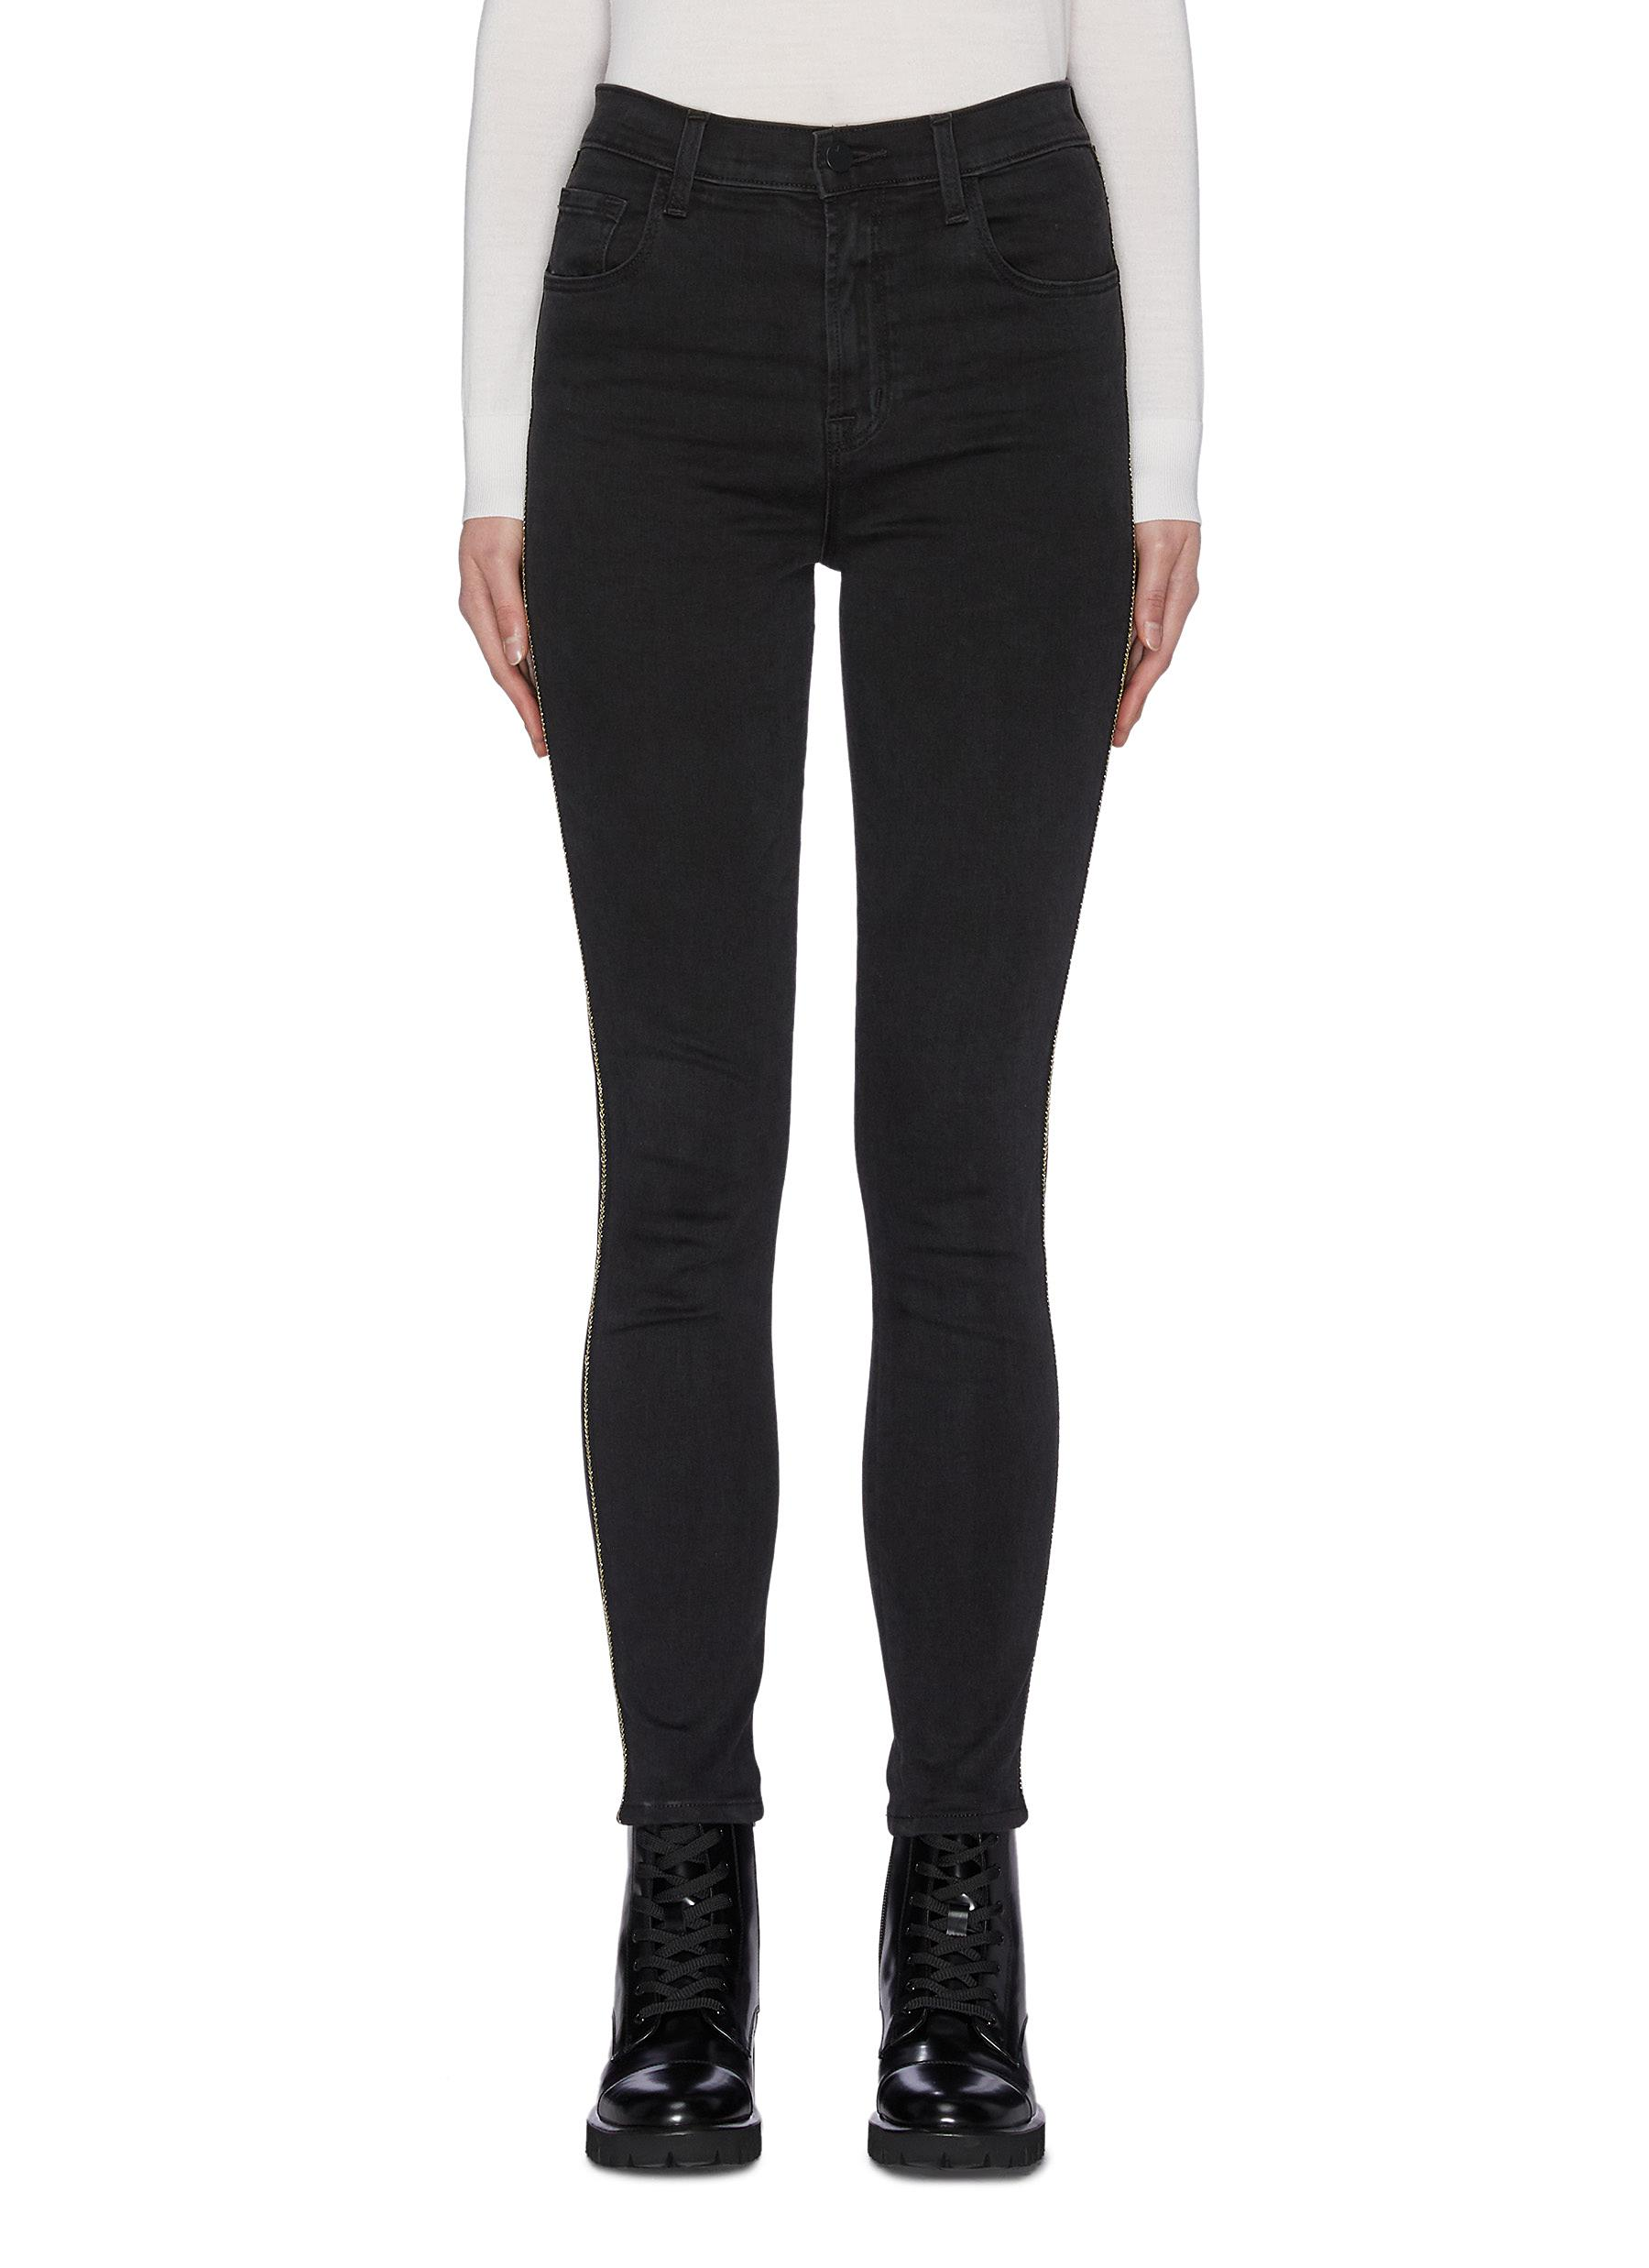 Buy J Brand Jeans 'Leenah' contrast outseam cropped skinny jeans